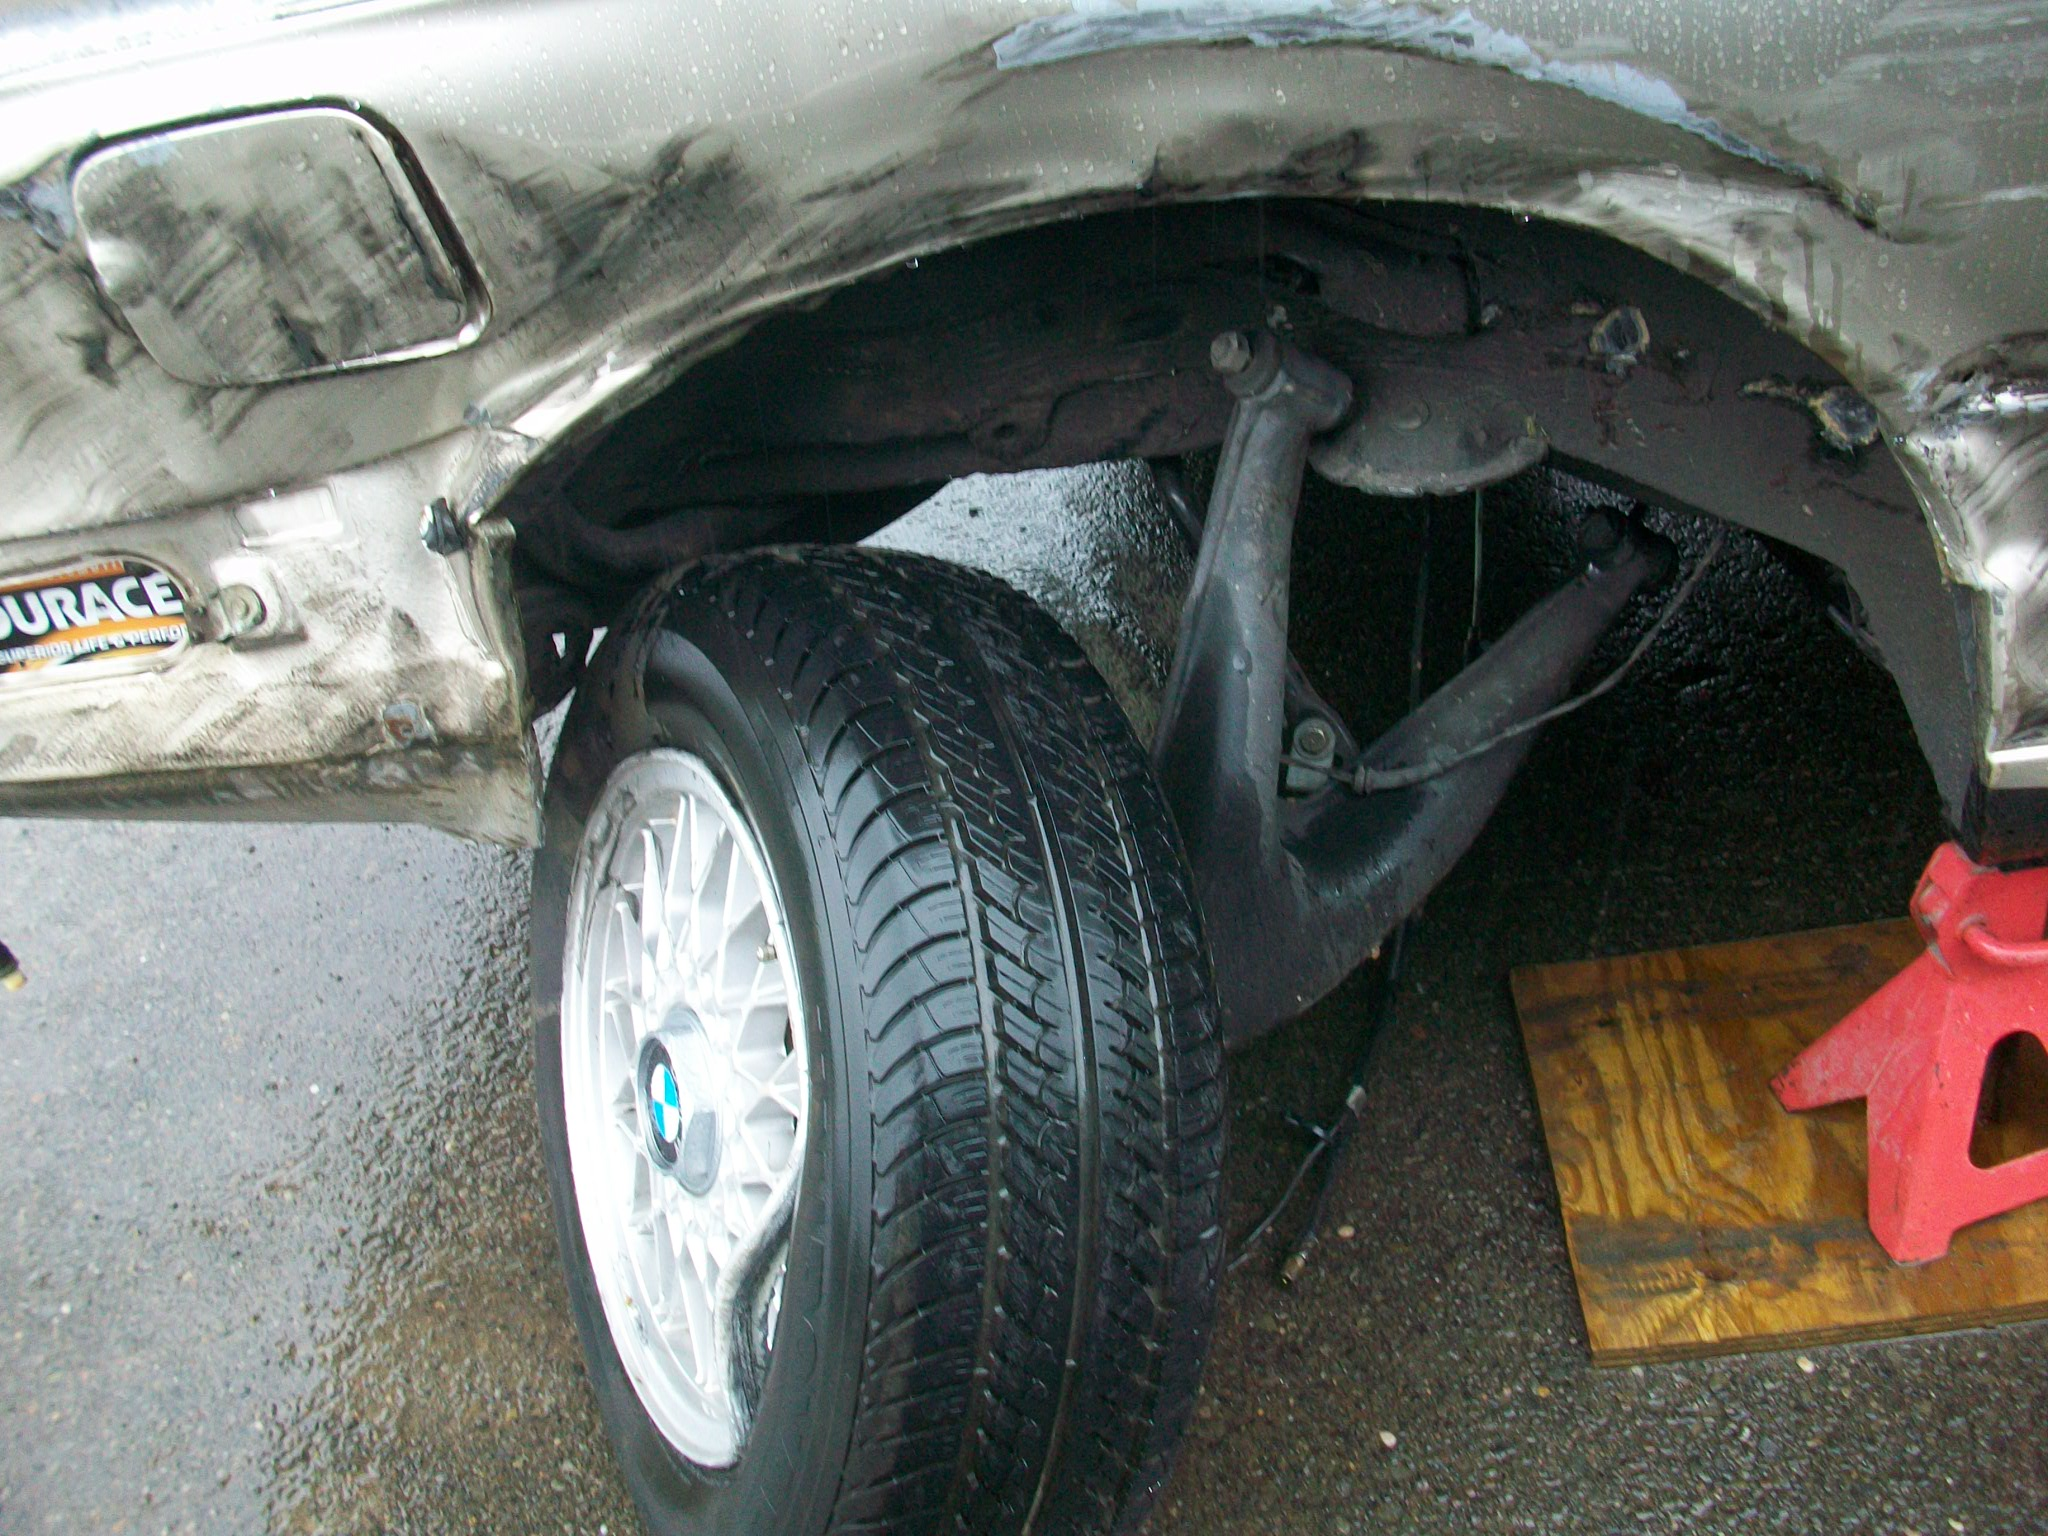 BMW crash damage 001.JPG